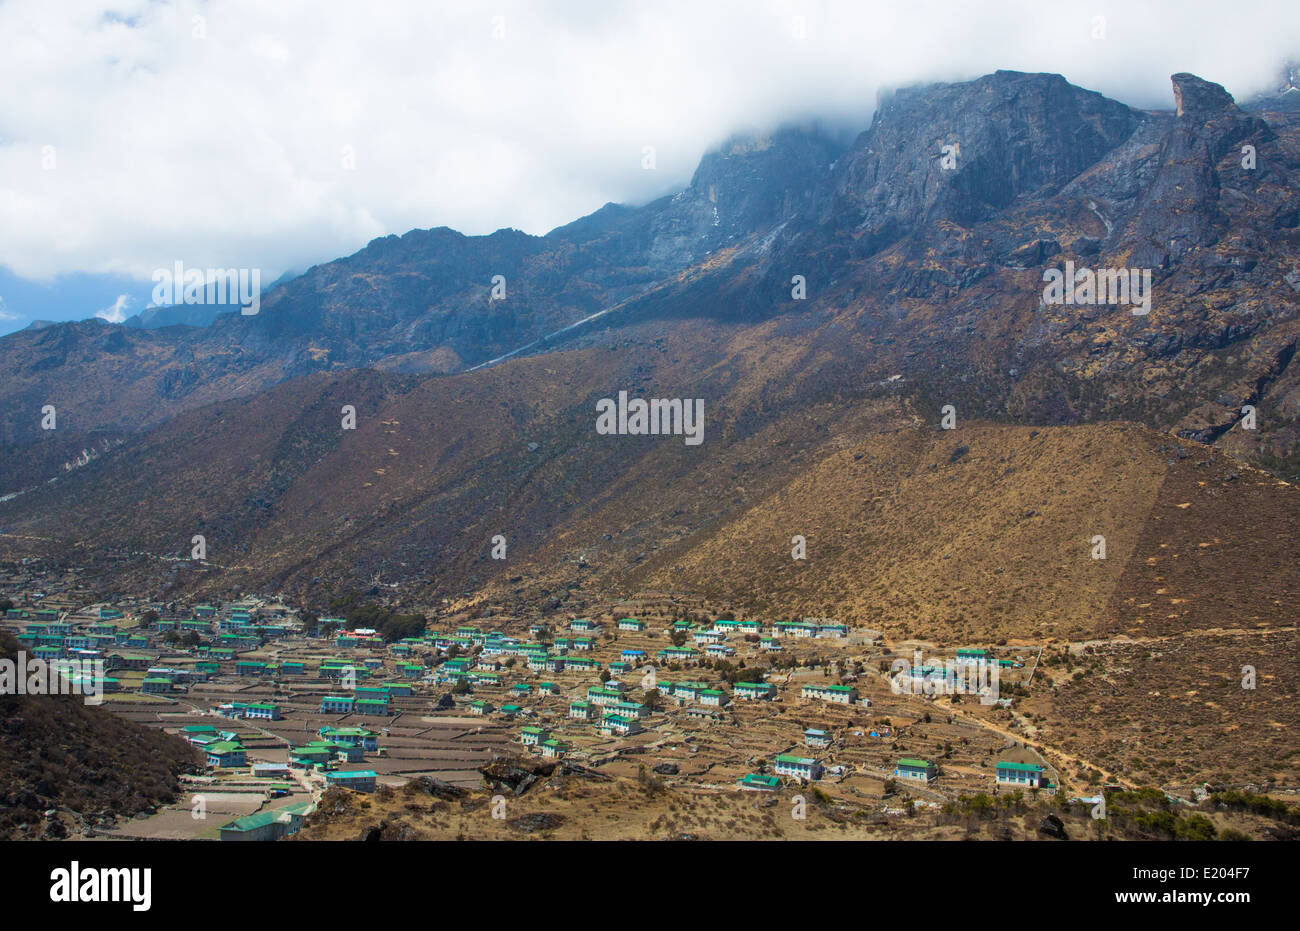 Nepal The village of Khumjung with the cloud-topped Himalayas rising steeply above it. remote, Mt Everest, Himalayas - Stock Image